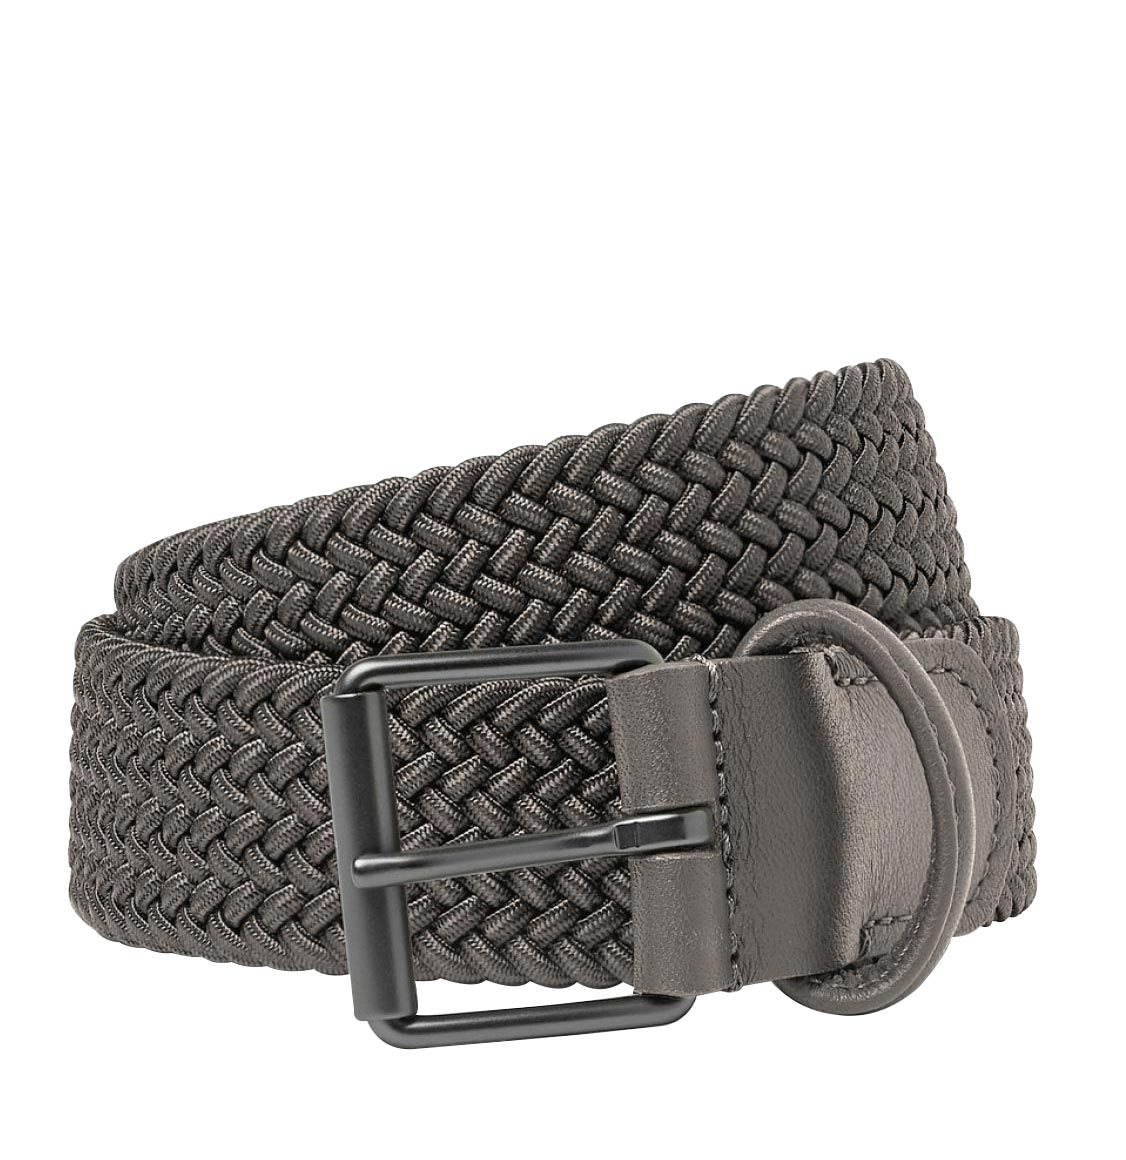 Anderson's Leather-Trimmed Woven Belt Grey